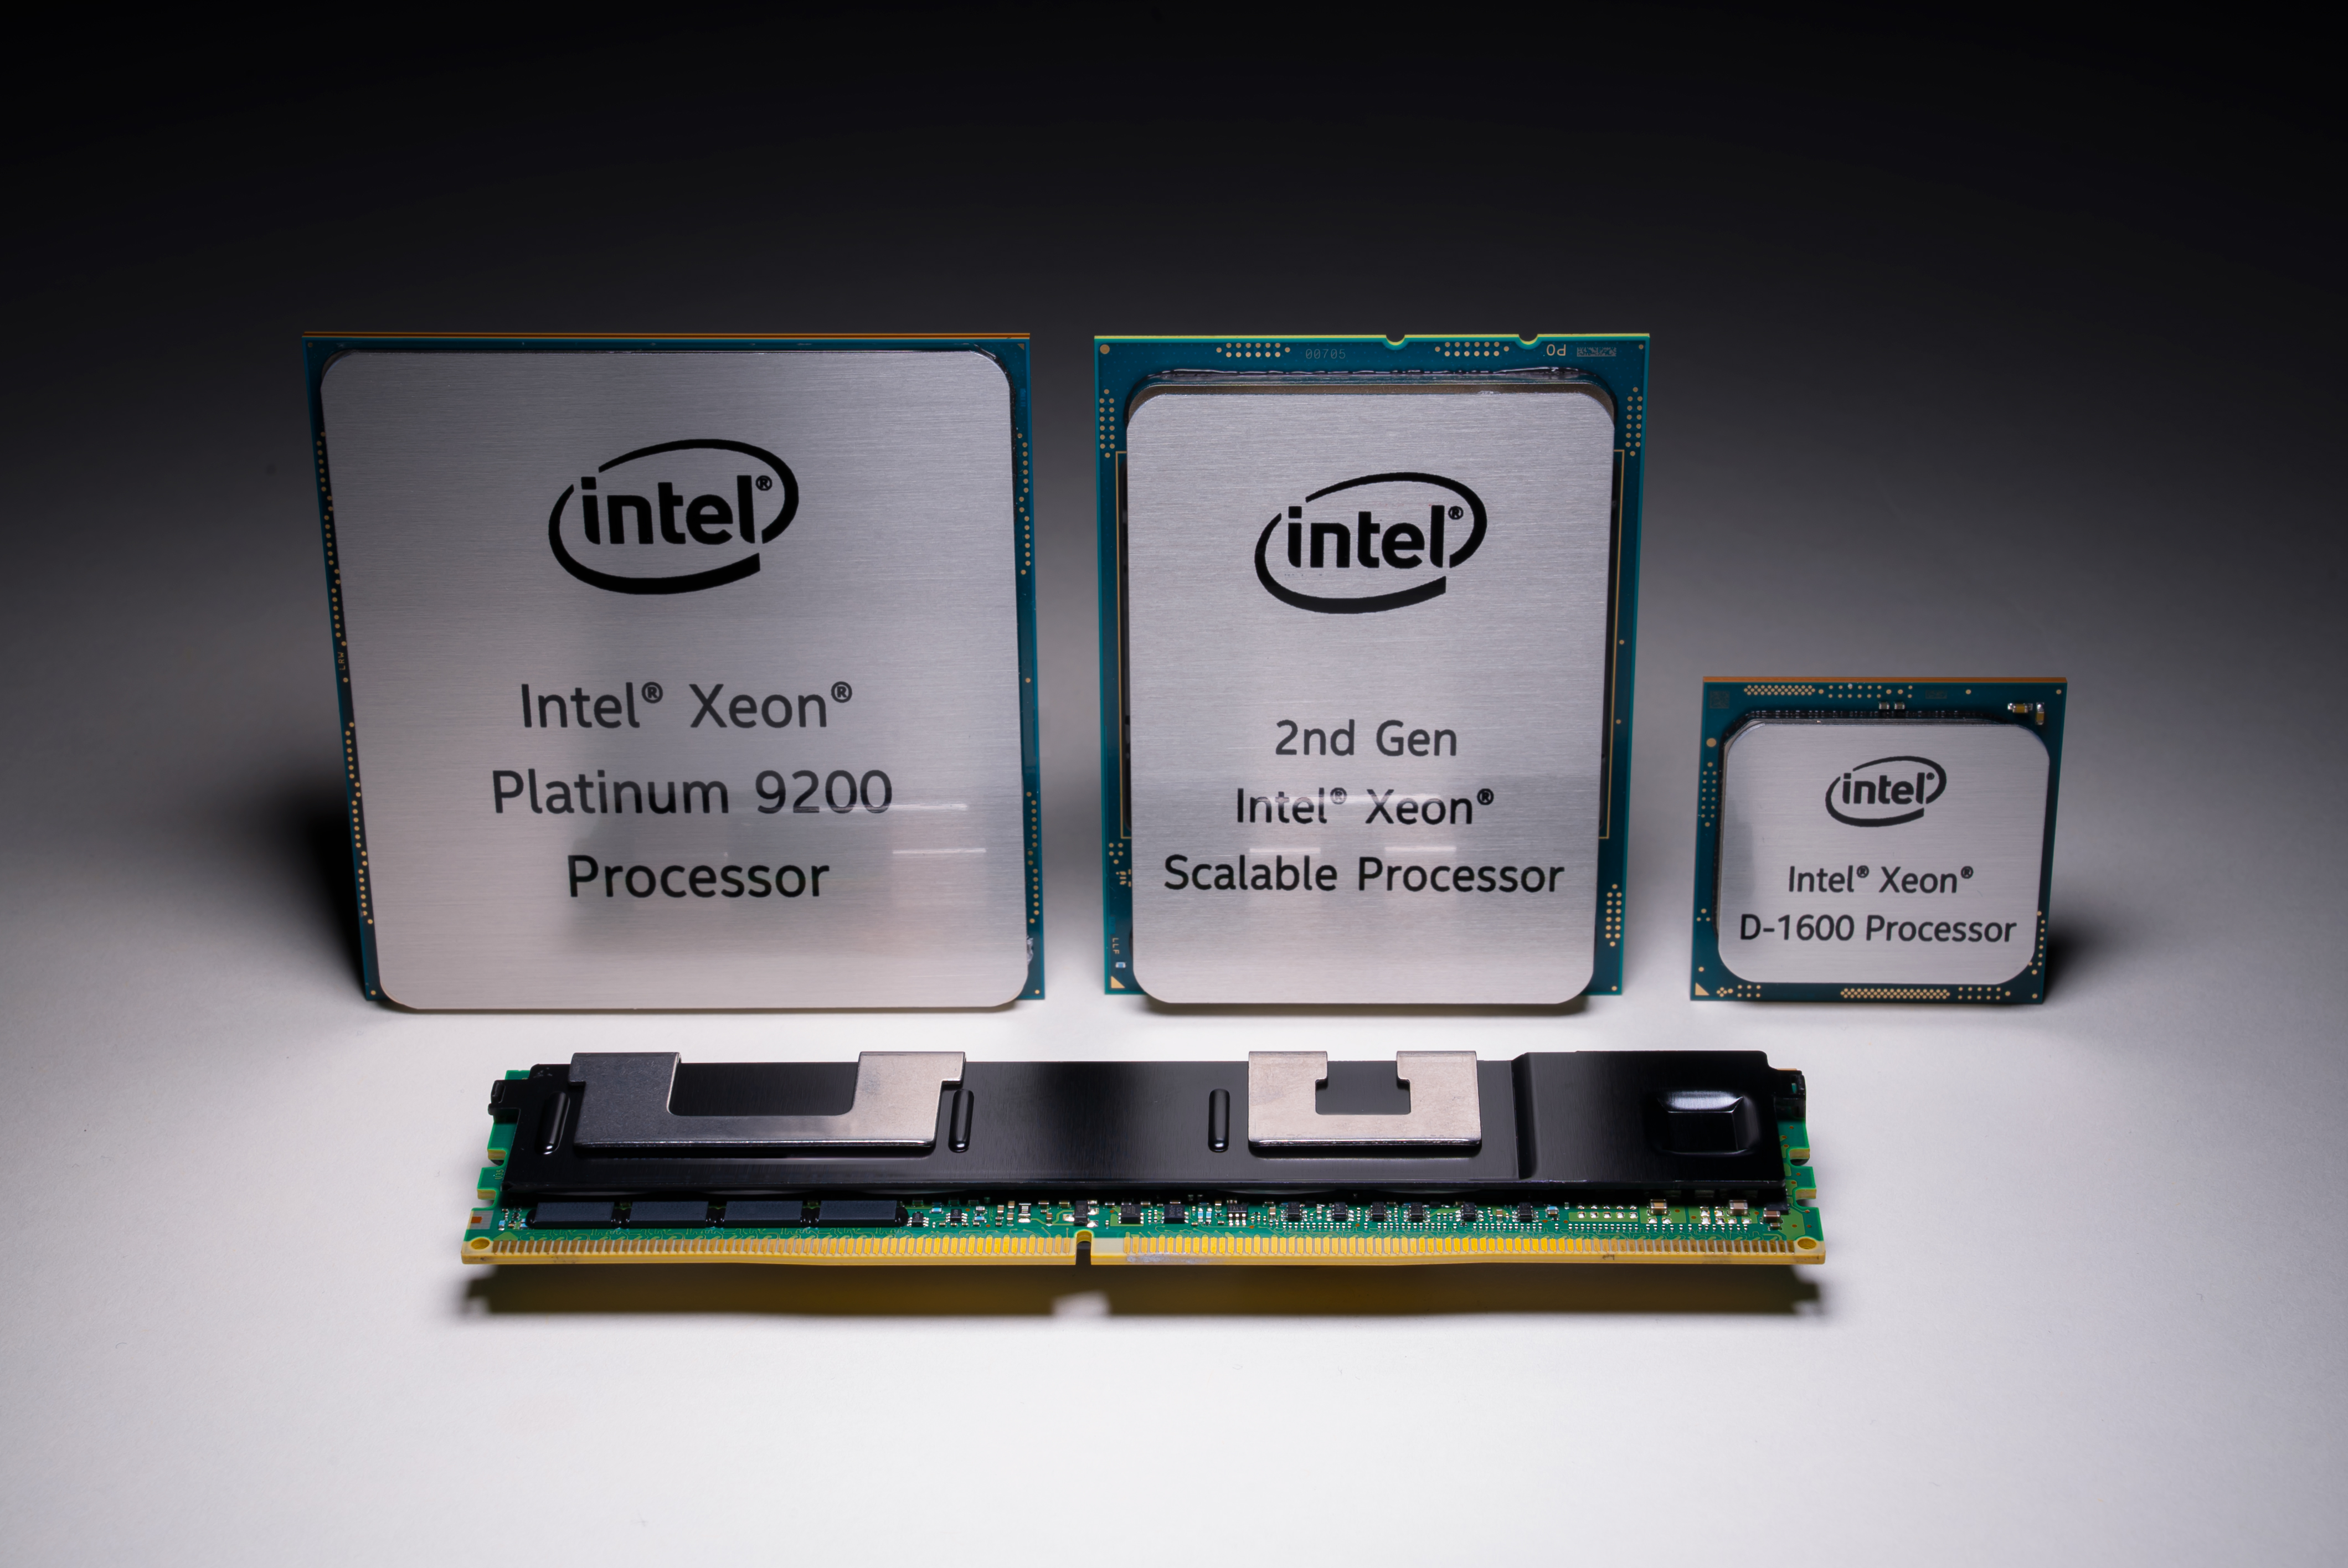 Intel's new assault on the data center: 56-core Xeons, 10nm FPGAs